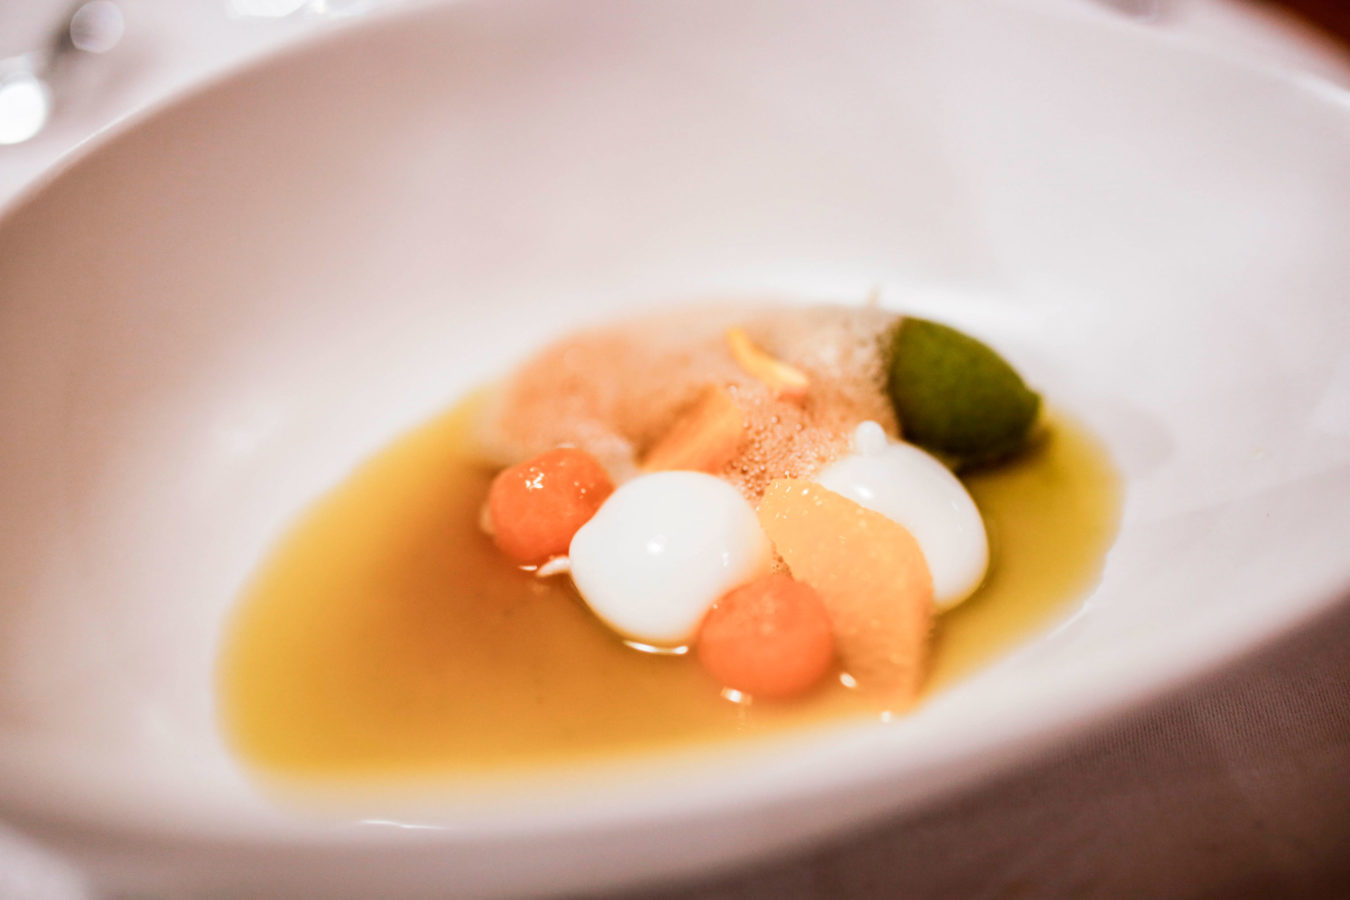 Cheese, melon, and citrus dish prepared by the extraordinary chefs at Finca km0